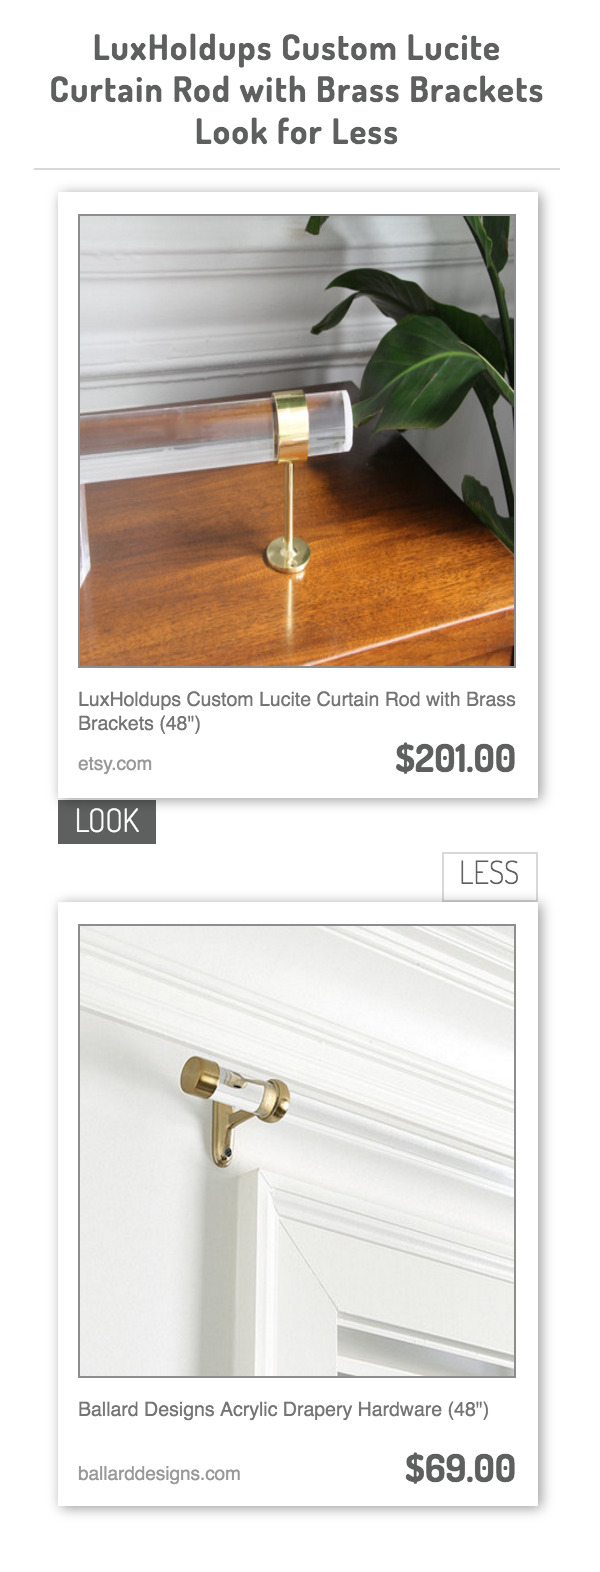 luxholdups custom lucite curtain rod with brass brackets vs luxholdups custom lucite curtain rod with brass brackets vs ballard designs acrylic drapery hardware